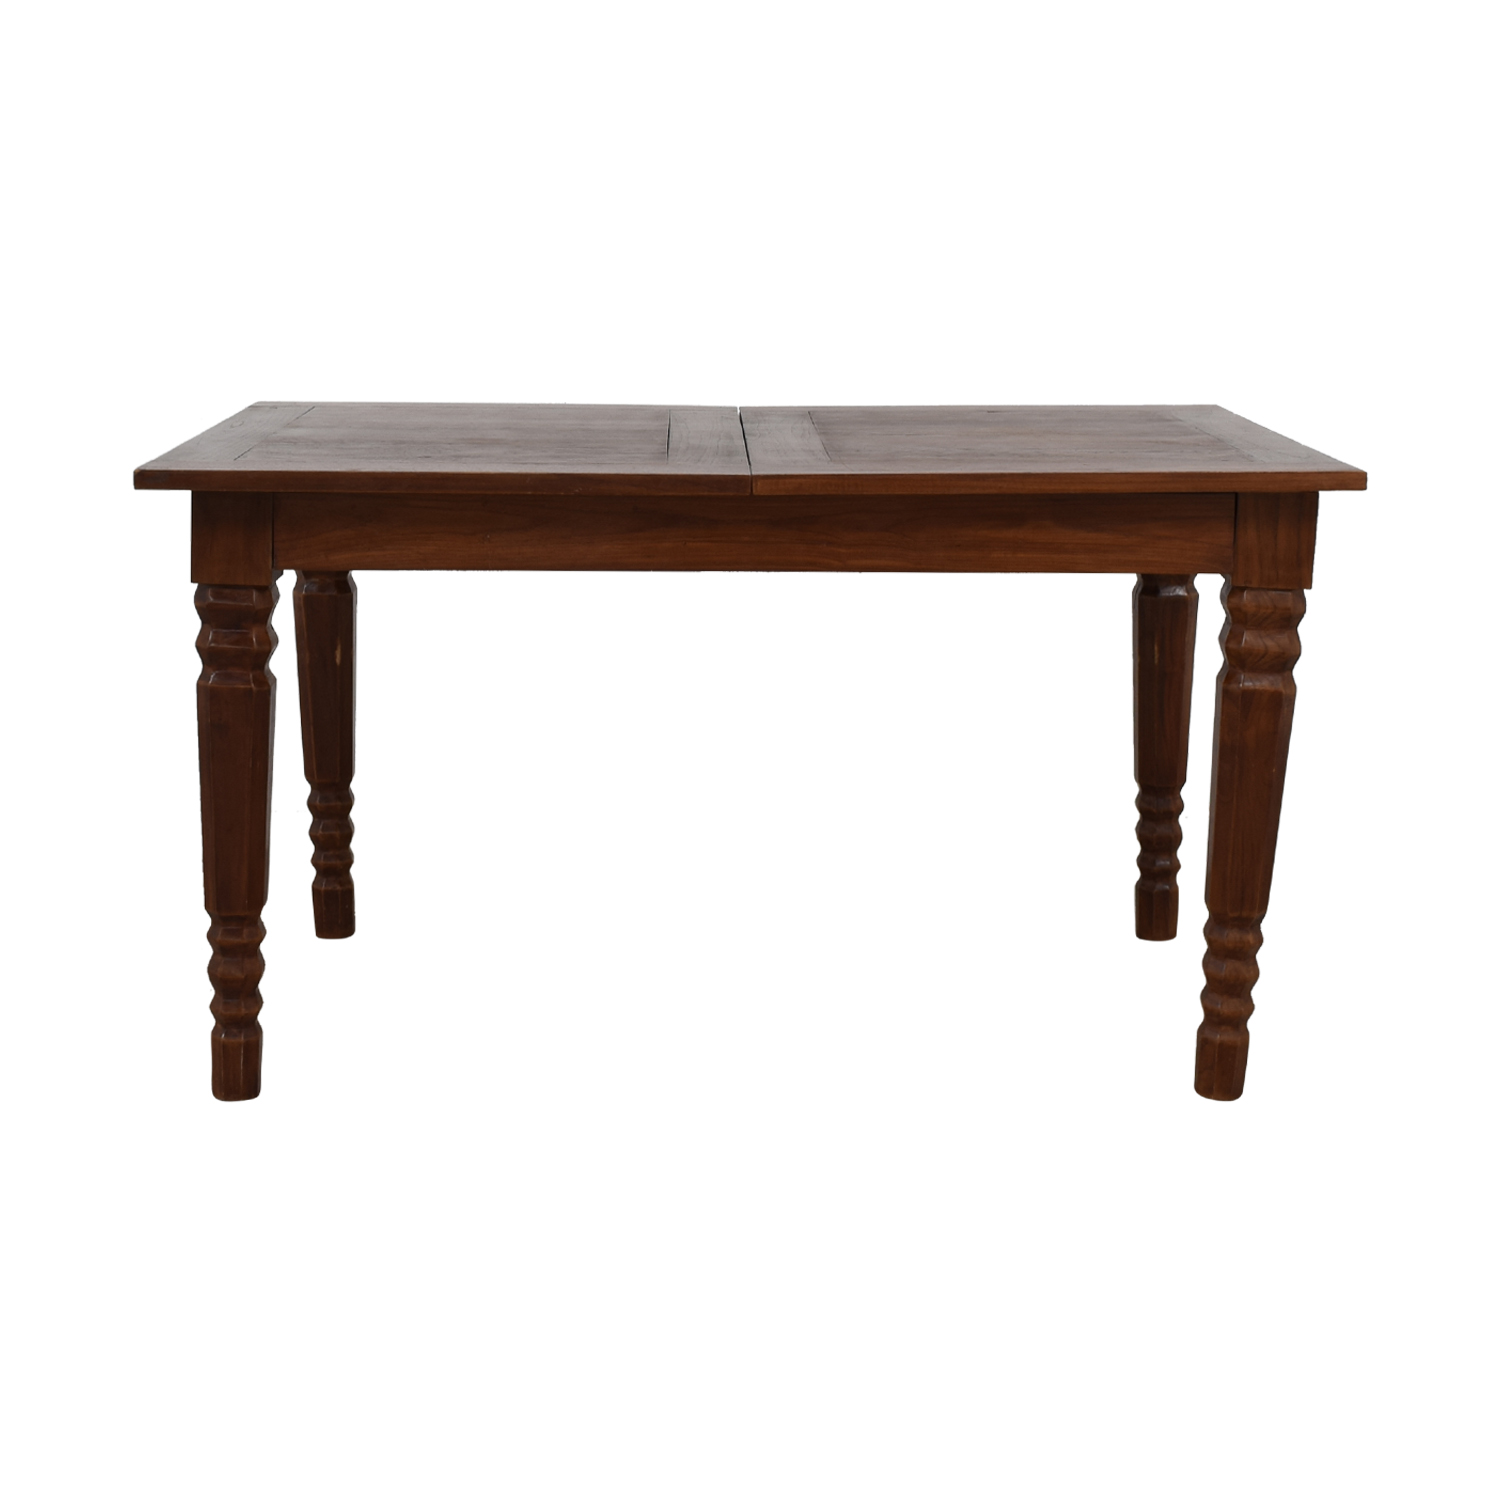 Custom Rustic Extendable Dining Table on sale